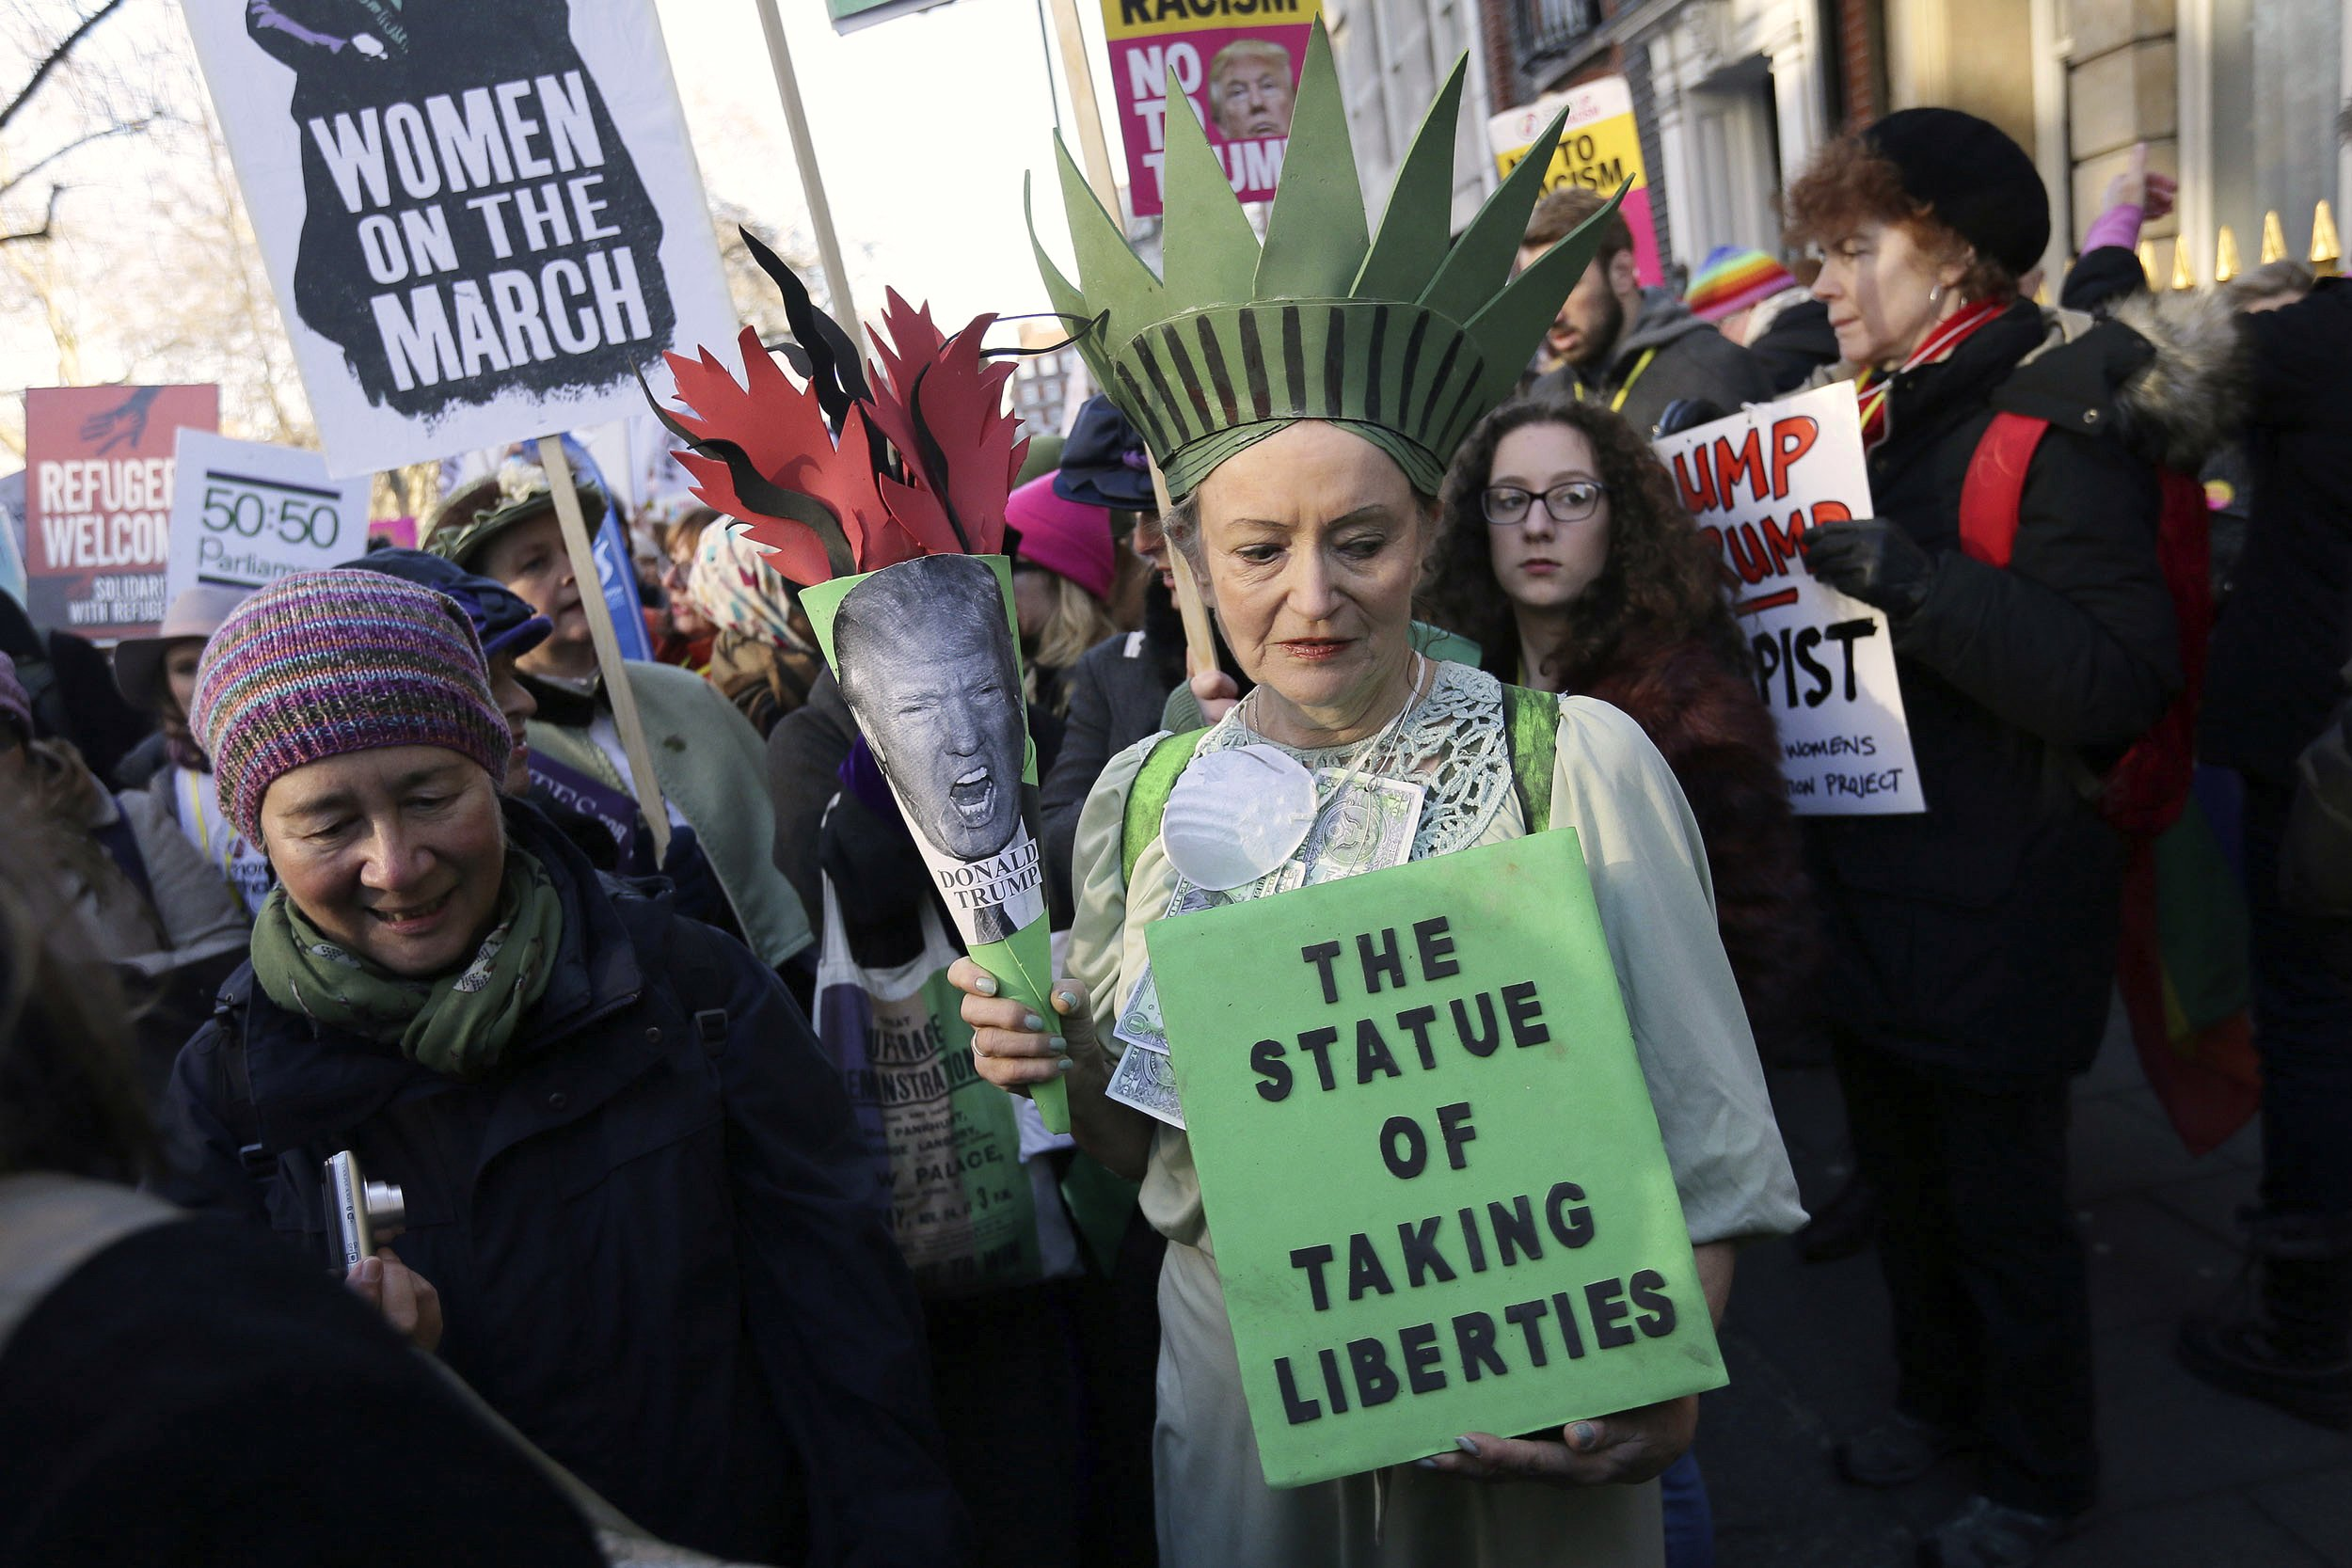 Demonstrators take part in the Women's March following the Inauguration of President Trump, in London, on Jan. 21, 2016.